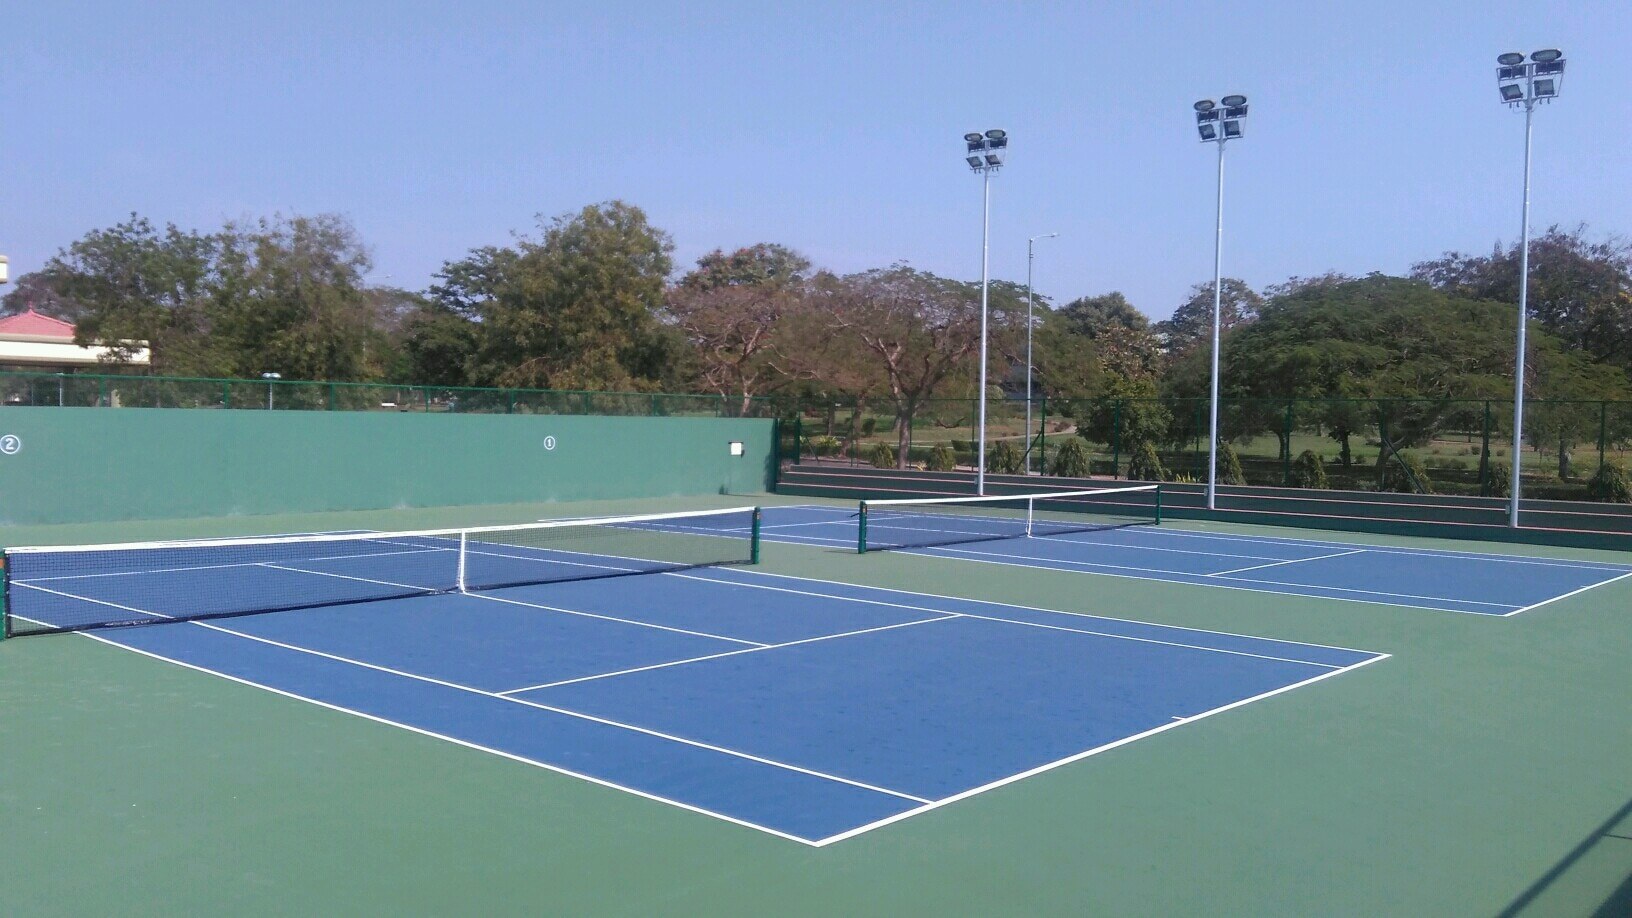 Excel Sports International is expertise for Synthetic surface coating of sports court like Tennis Court, Basketball Court, Athletic track etc.We used material of International quality and brand and we also provide warranty of 3 years for any king of damages is occur.<br/>Price starts 40 rs / Sqft for non cushion coating<br/>and 70 rs / Sqft for cushion coating<br/>Synthetic surface coating in India<br/>Synthetic surface coating <br/>Acrylic surface coating